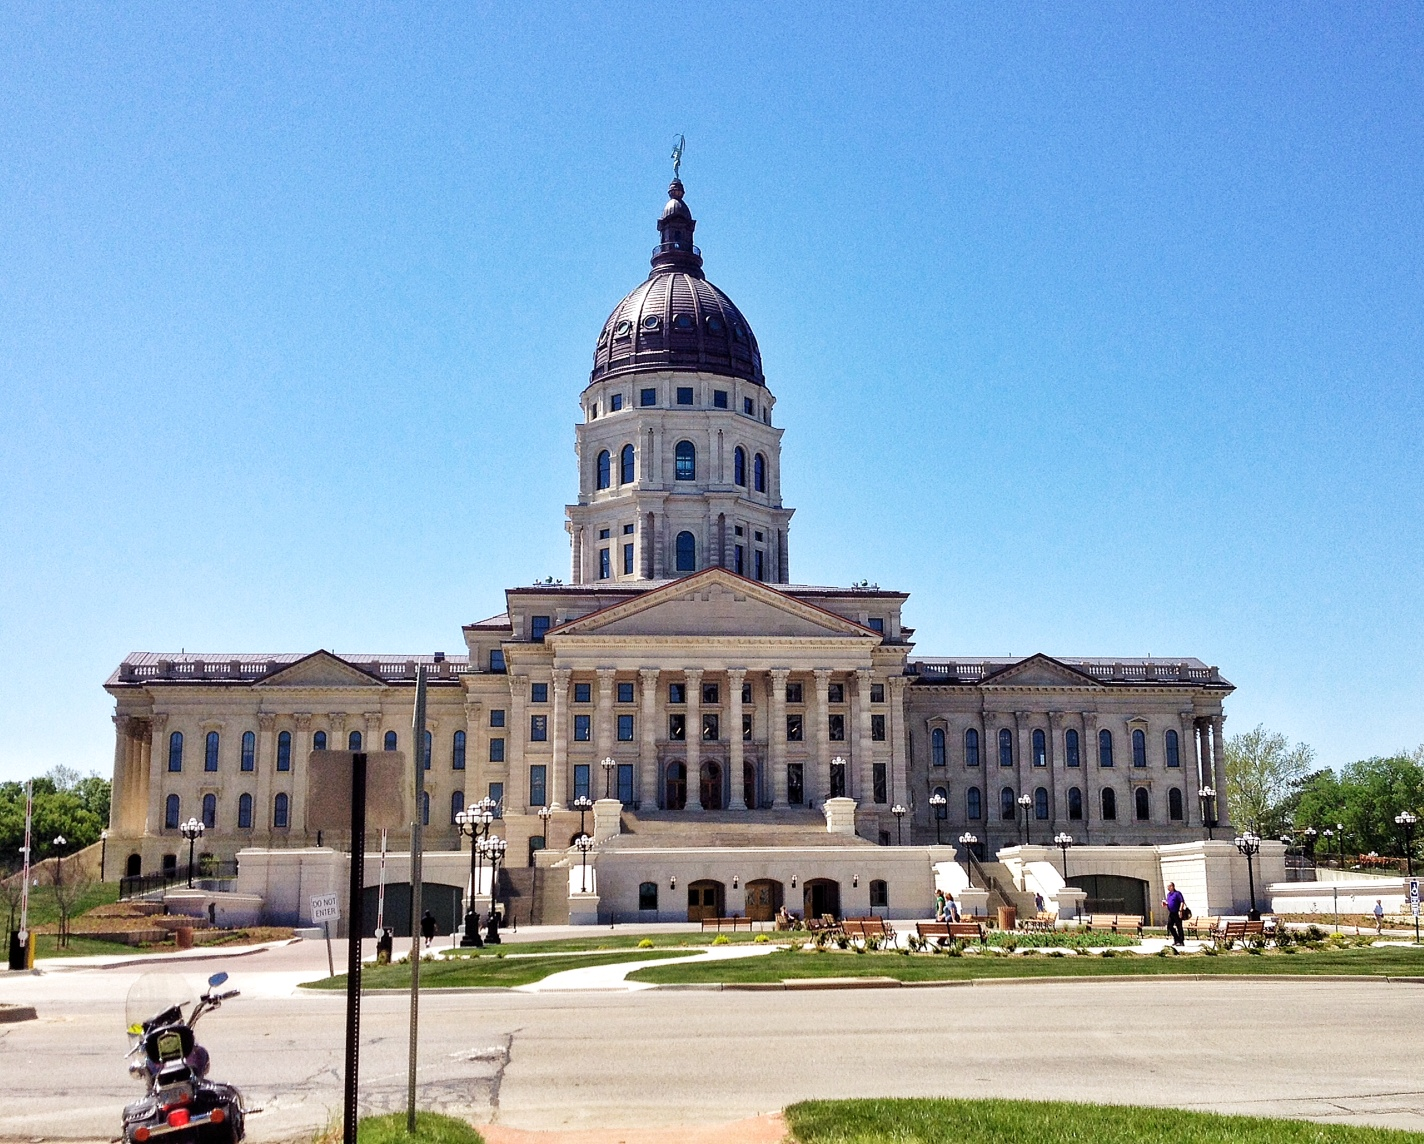 A sunny view of the Kansas Statehouse in Topeka. (Photo by J. Schafer)